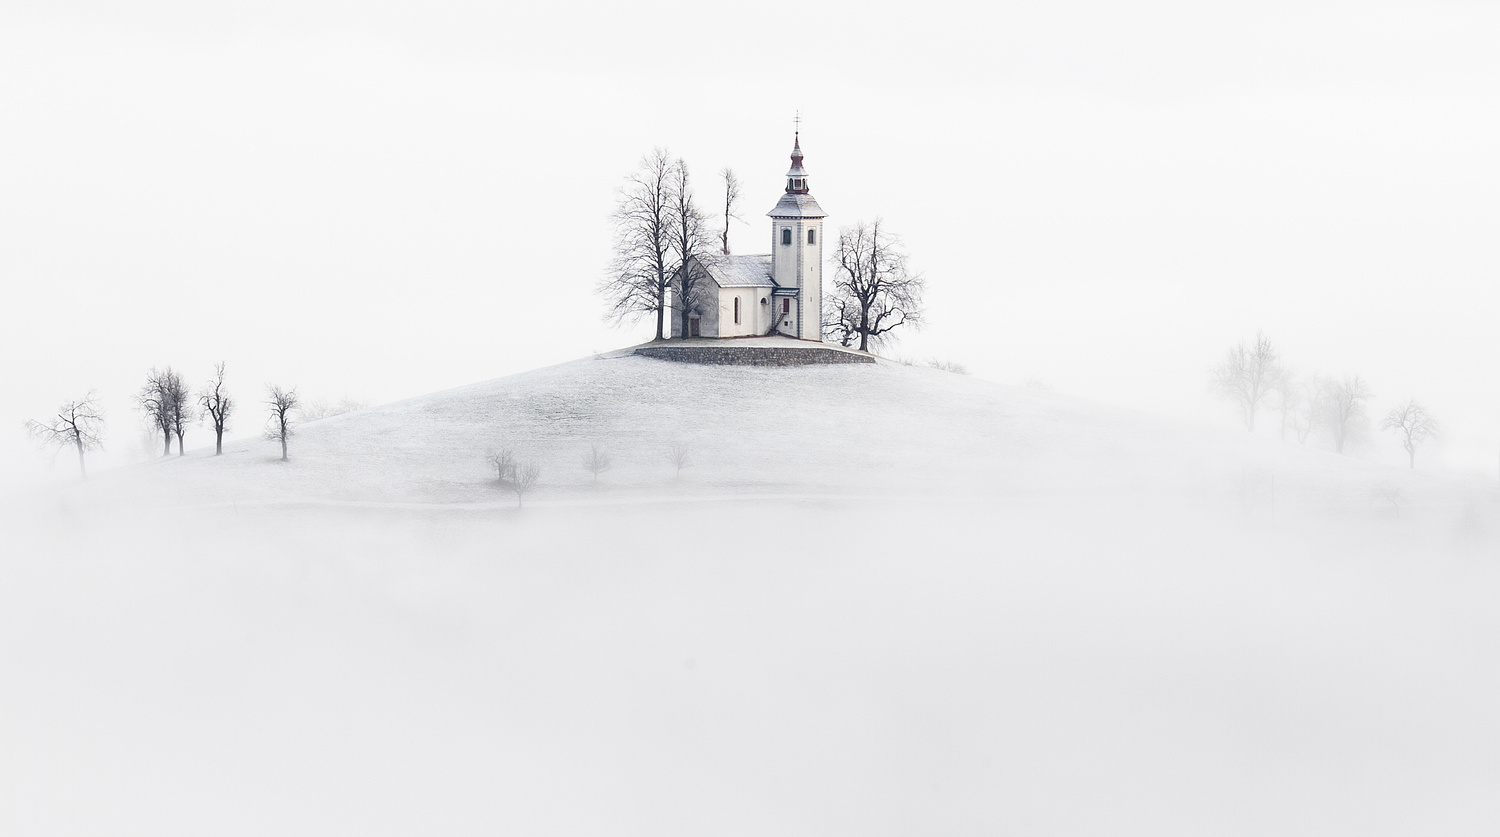 Whiteout by Piotr Skrzypiec